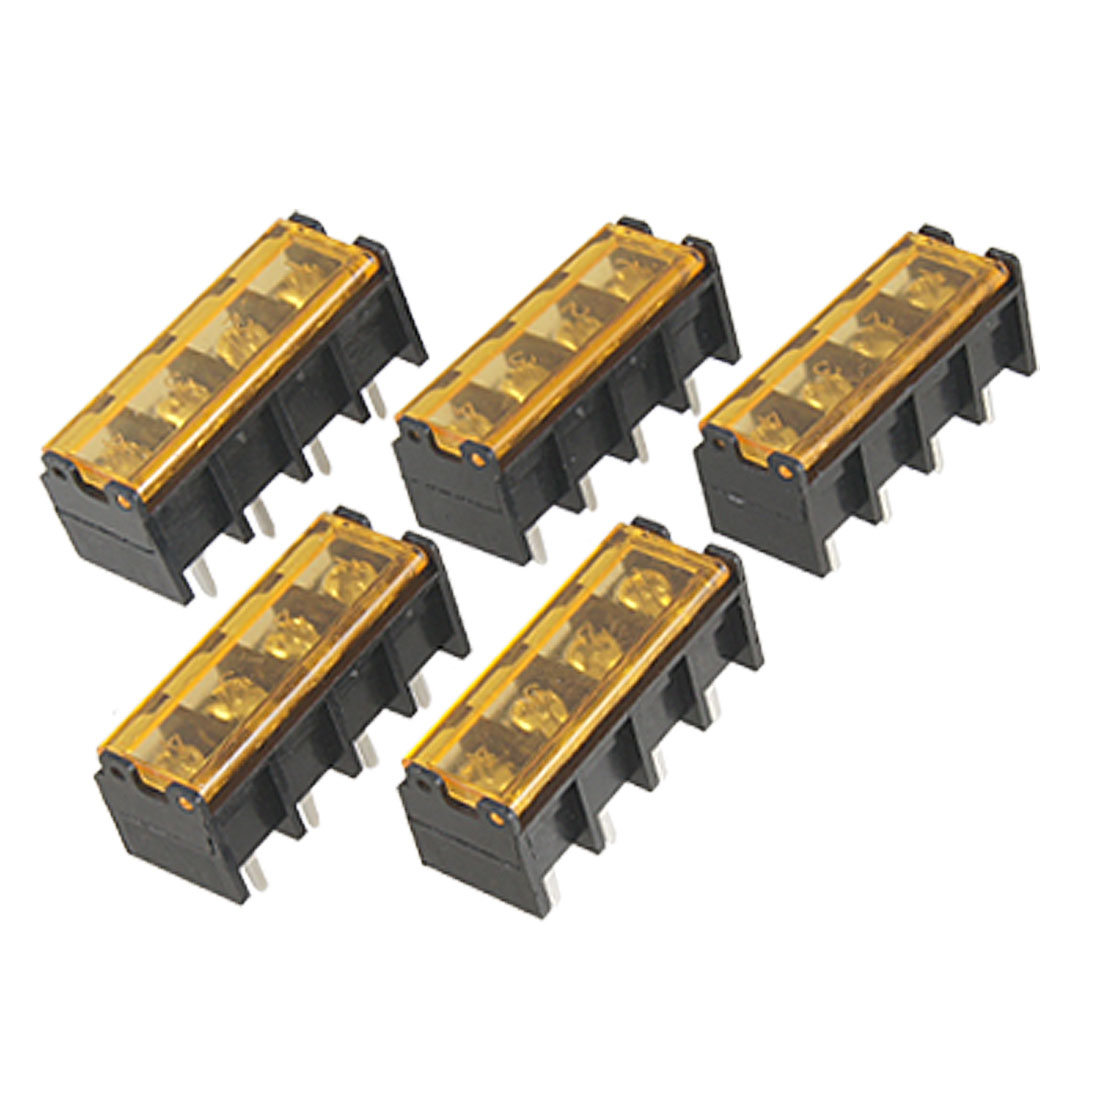 5 Pcs 300V 30A Single Row 4 Postion Covered Screw Terminal Strip